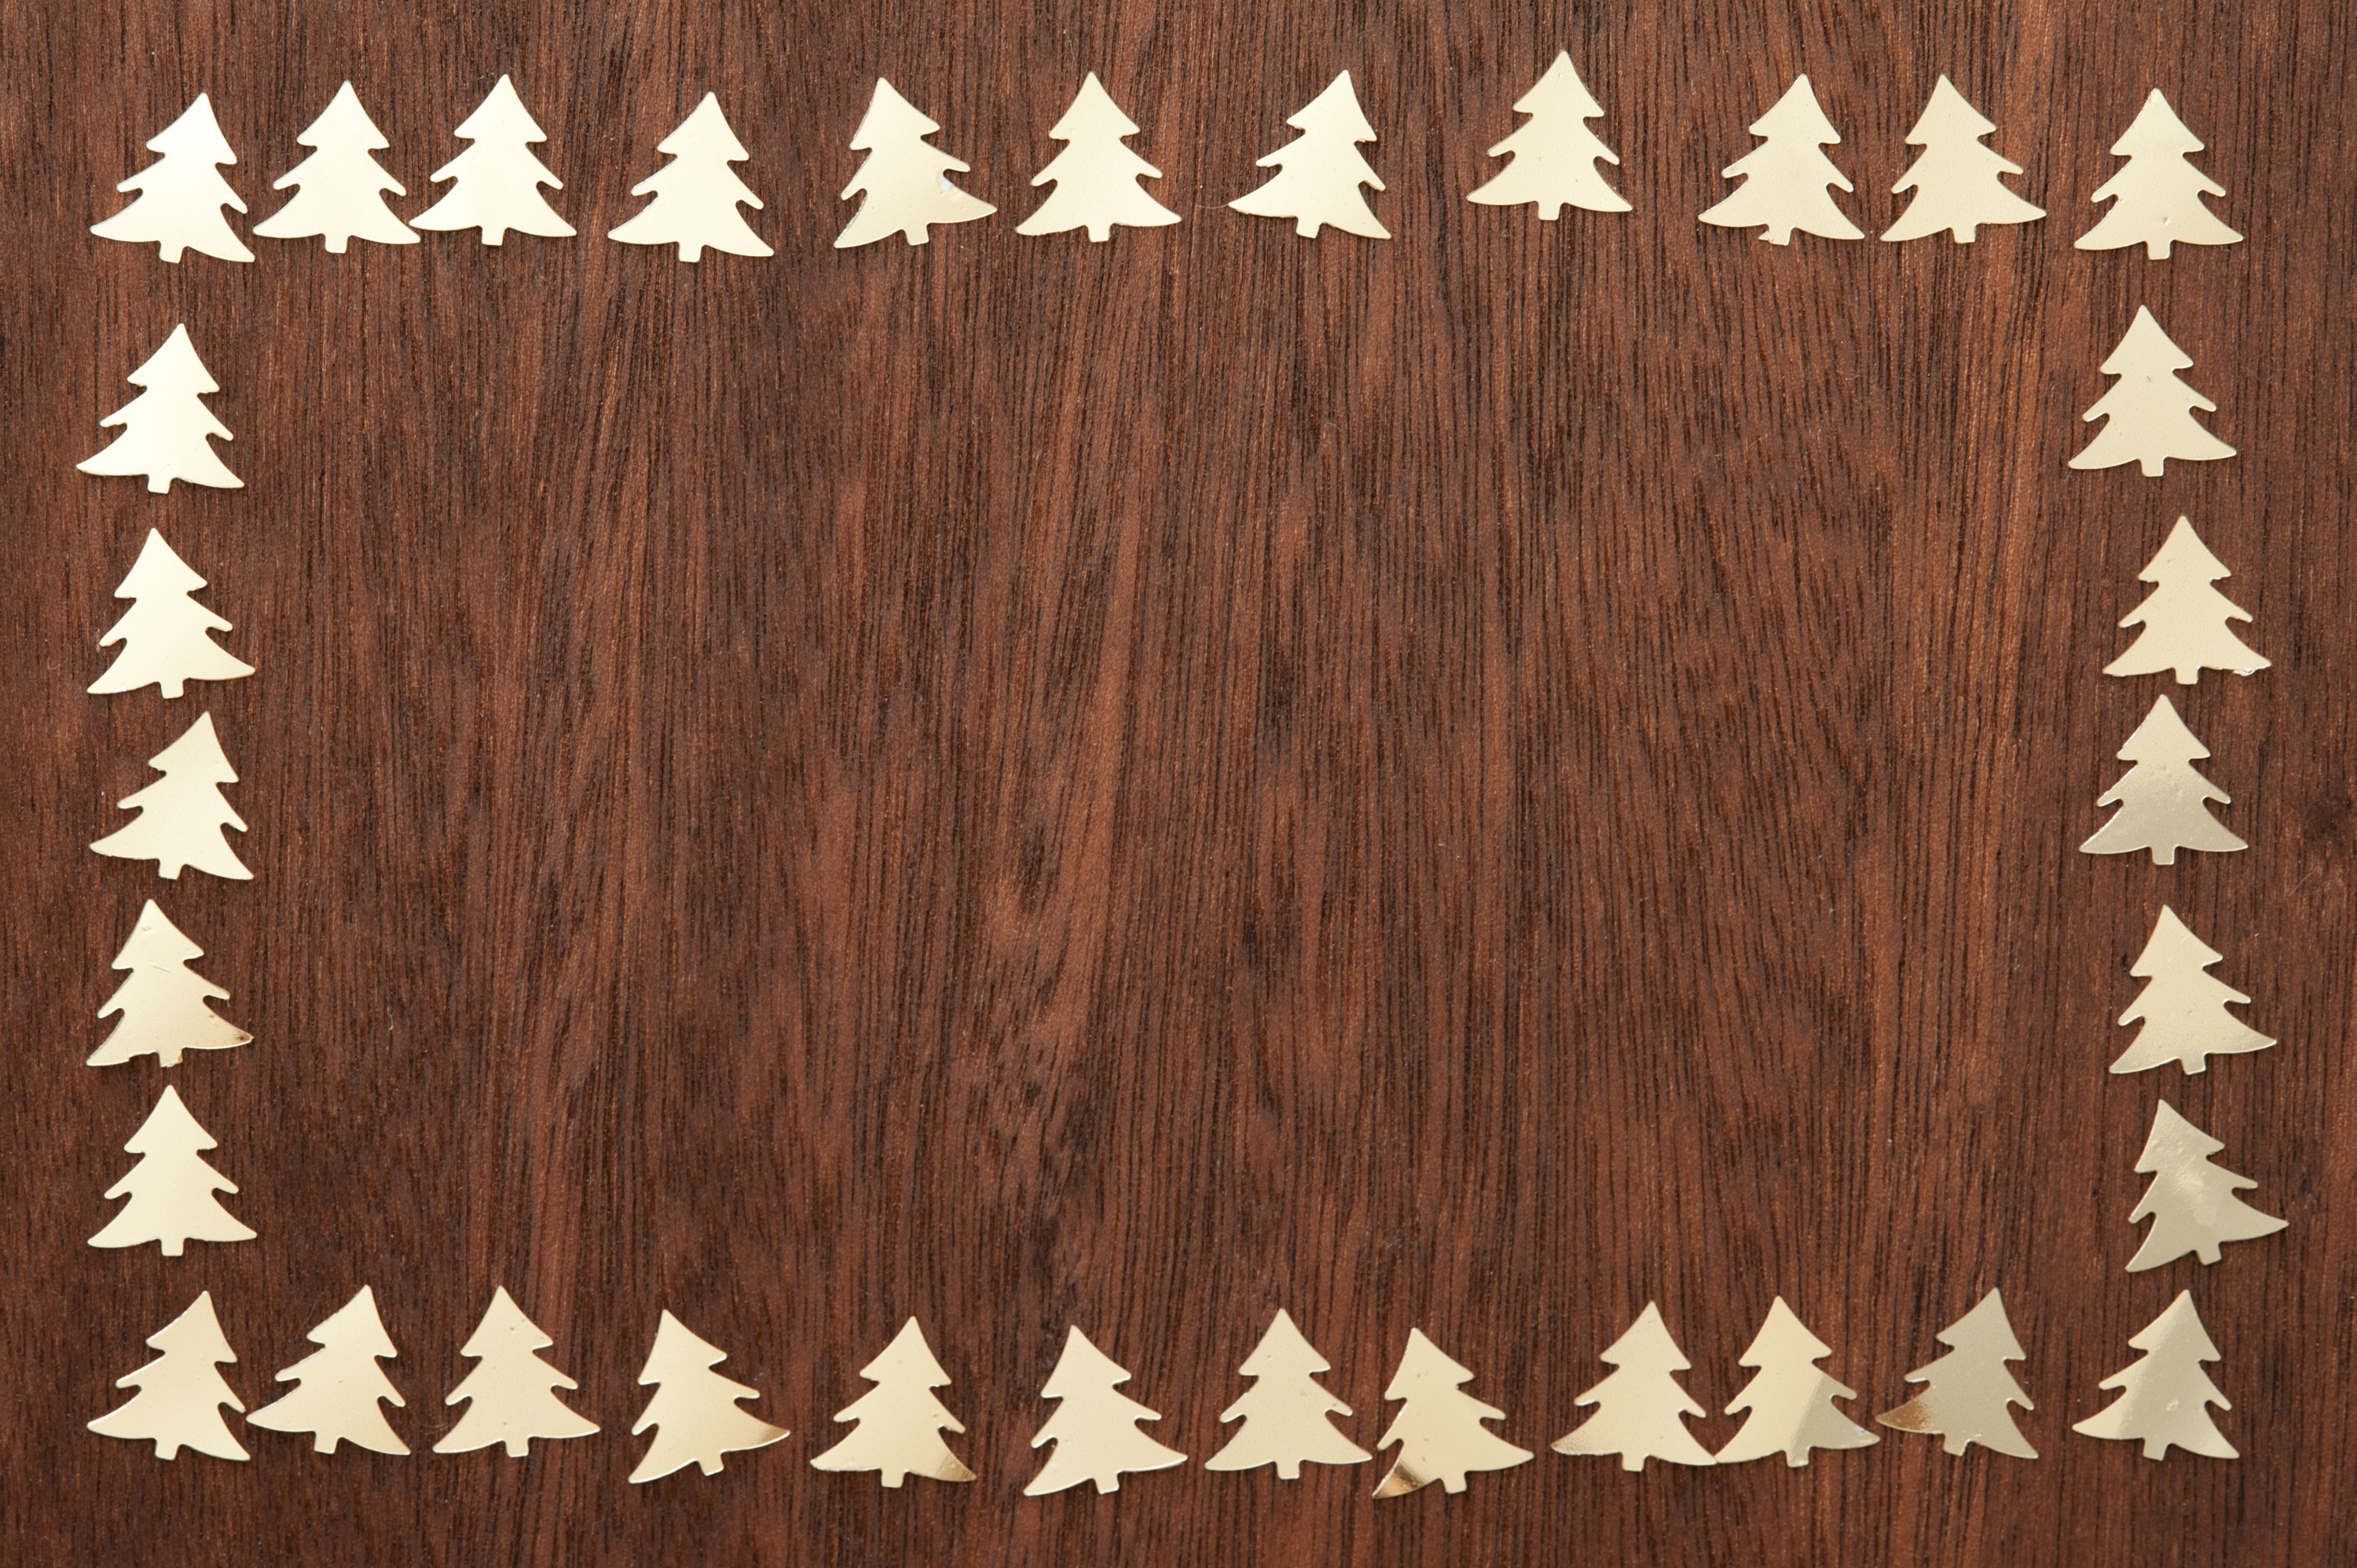 Wood christmas tree cutout - Cut Out Golden Christmas Trees Lying Around Edges On Wooden Table From Above